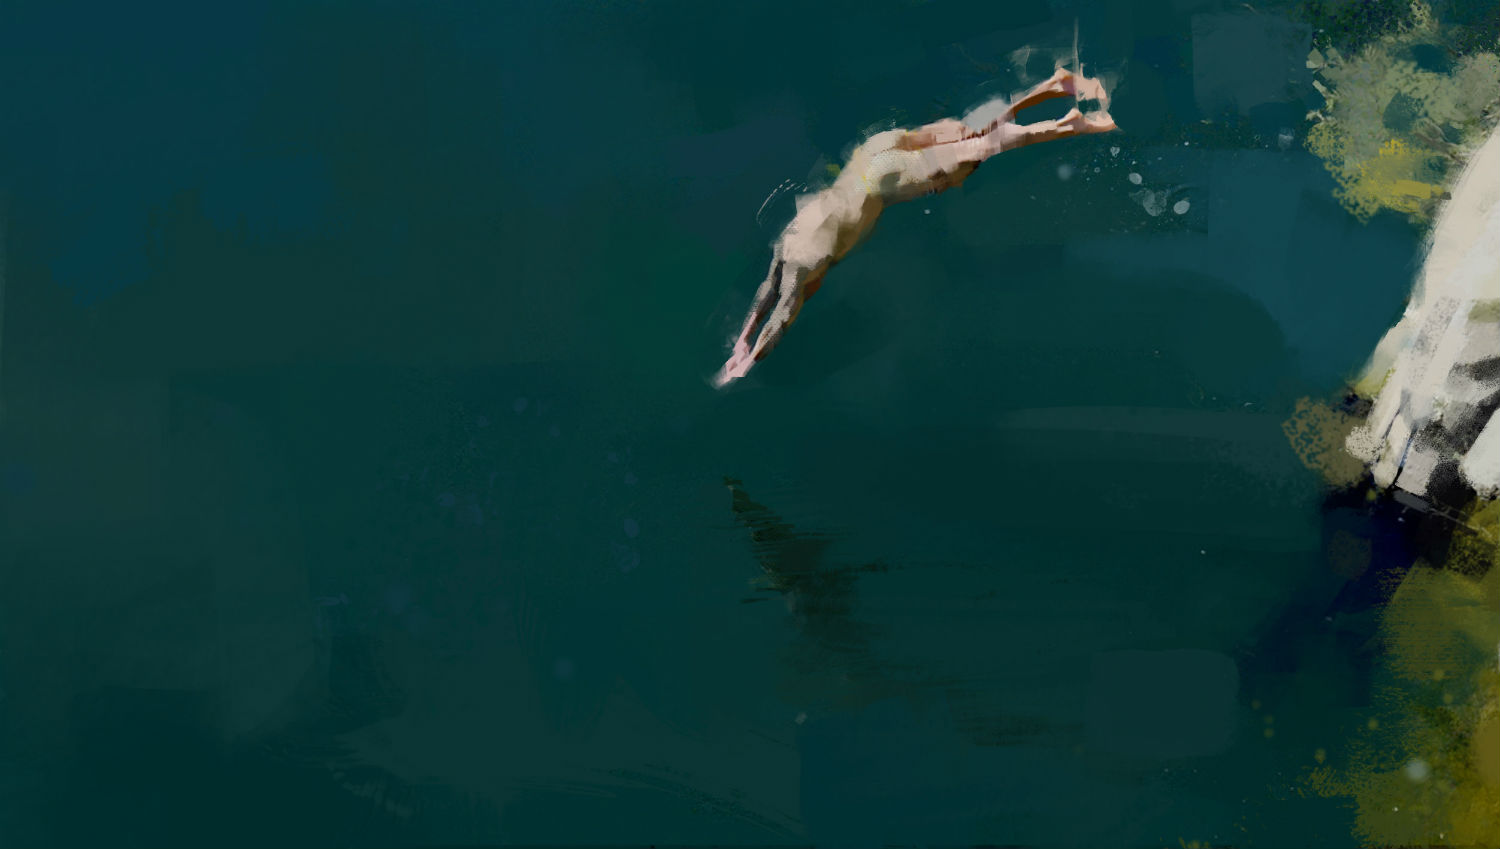 pedro covo painting green swimmer nude dive